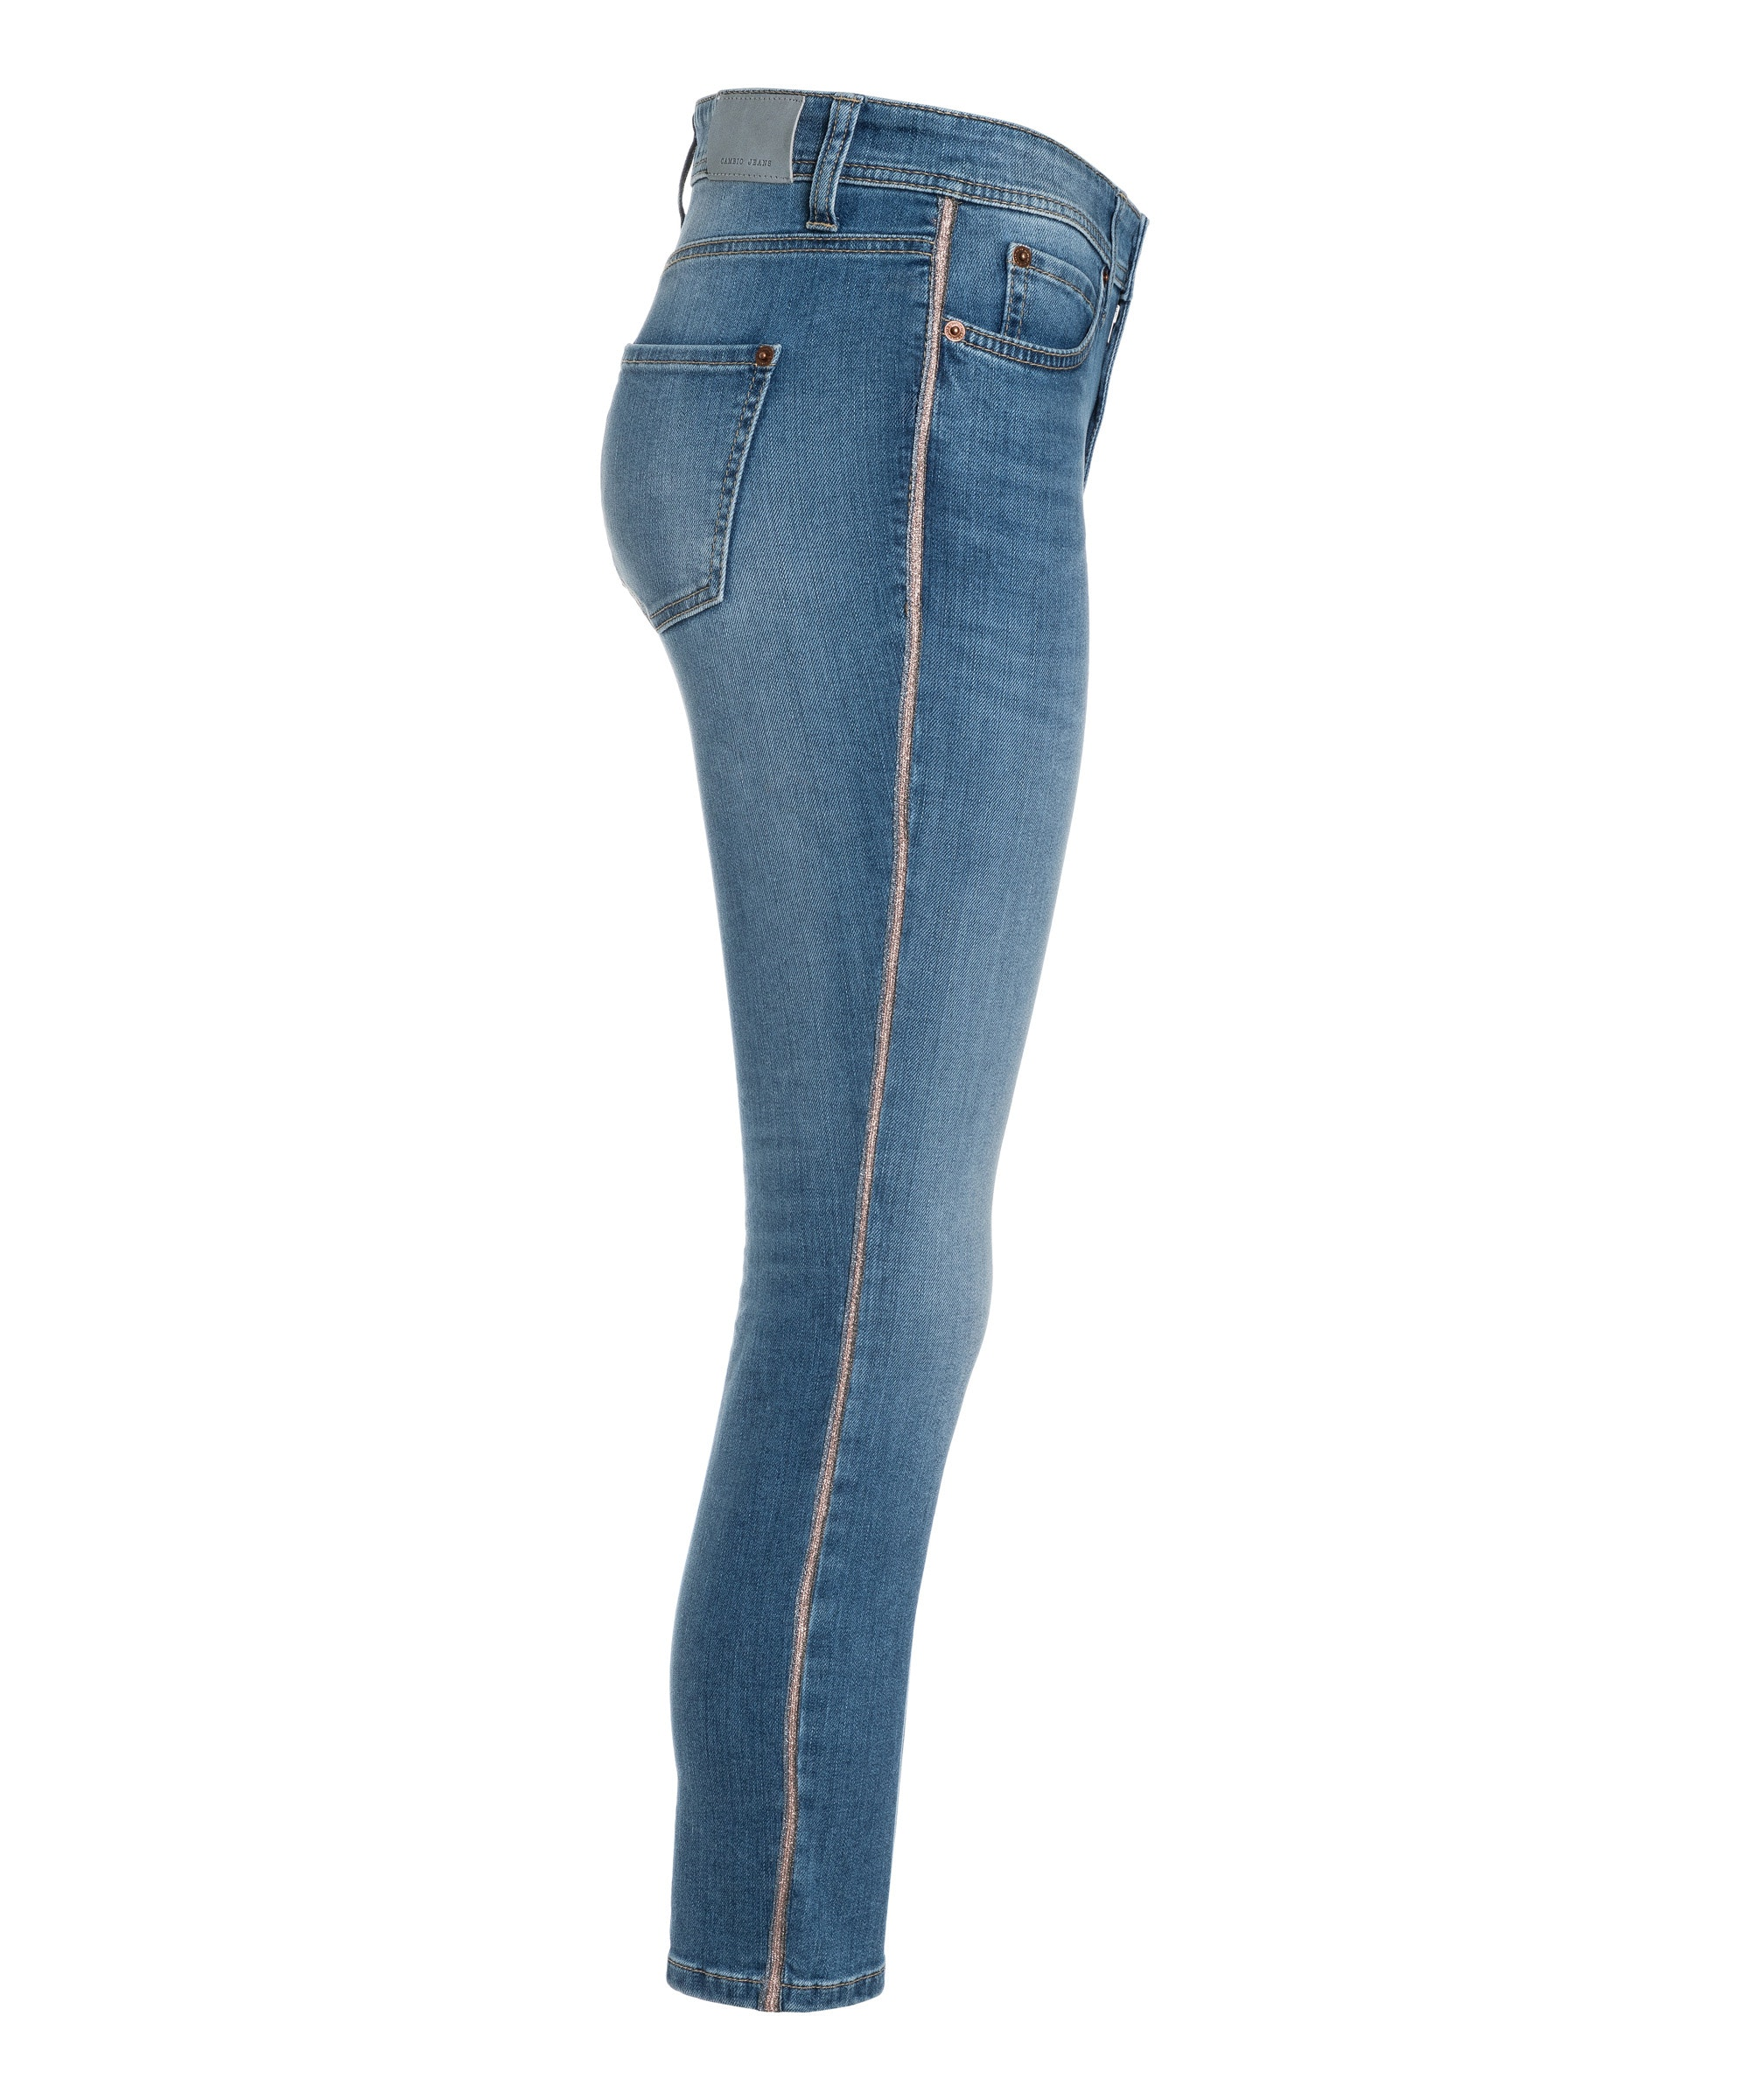 Cambio Jeans Parla ancle cut SUMMER MEDIUM 3rd USED